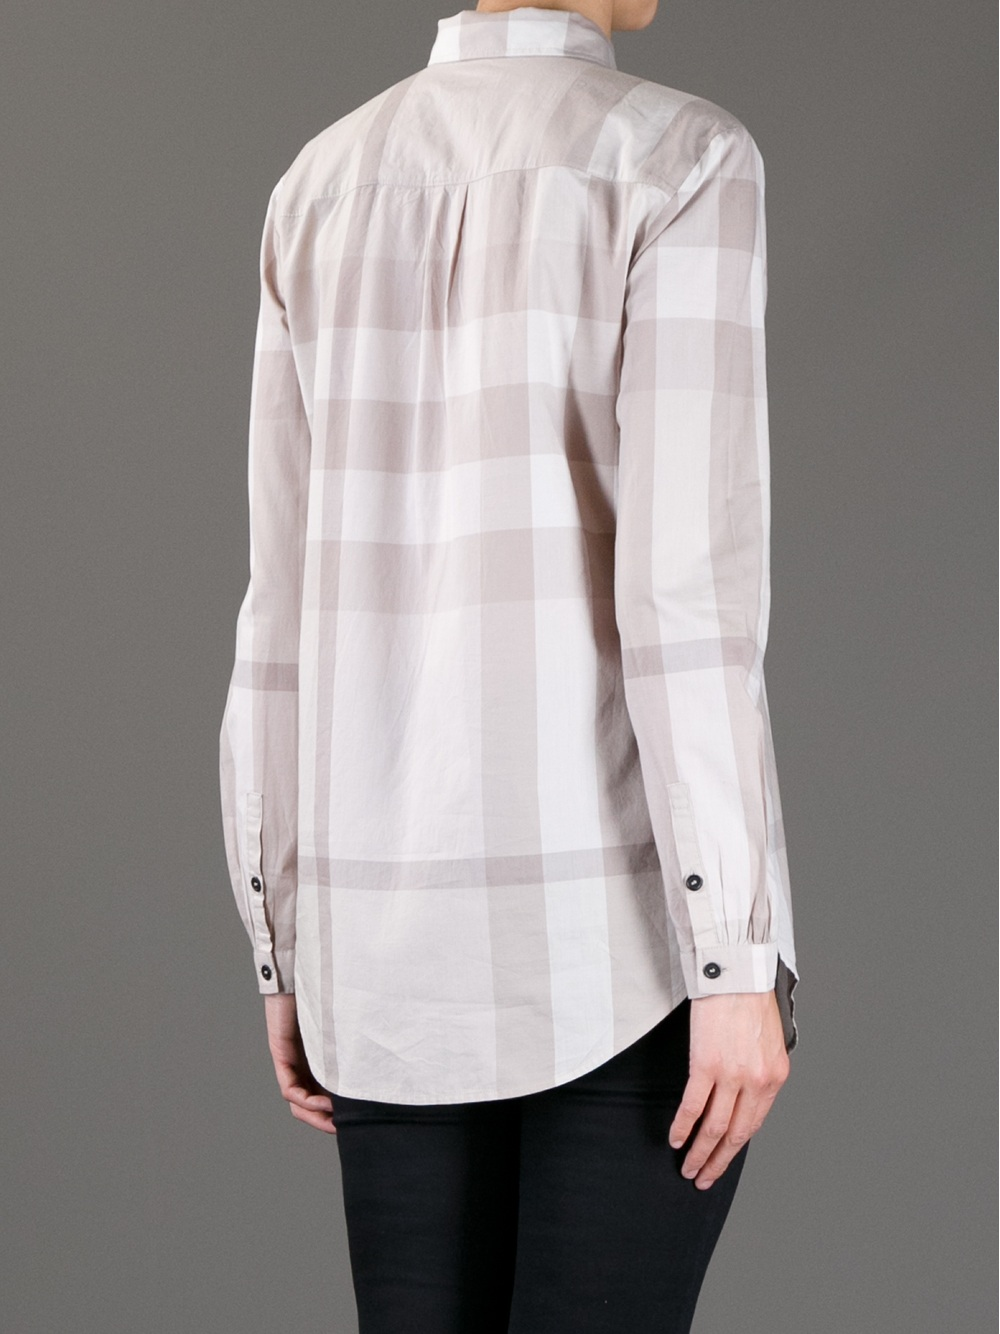 Burberry Brit Checked Shirt in Beige (Natural)